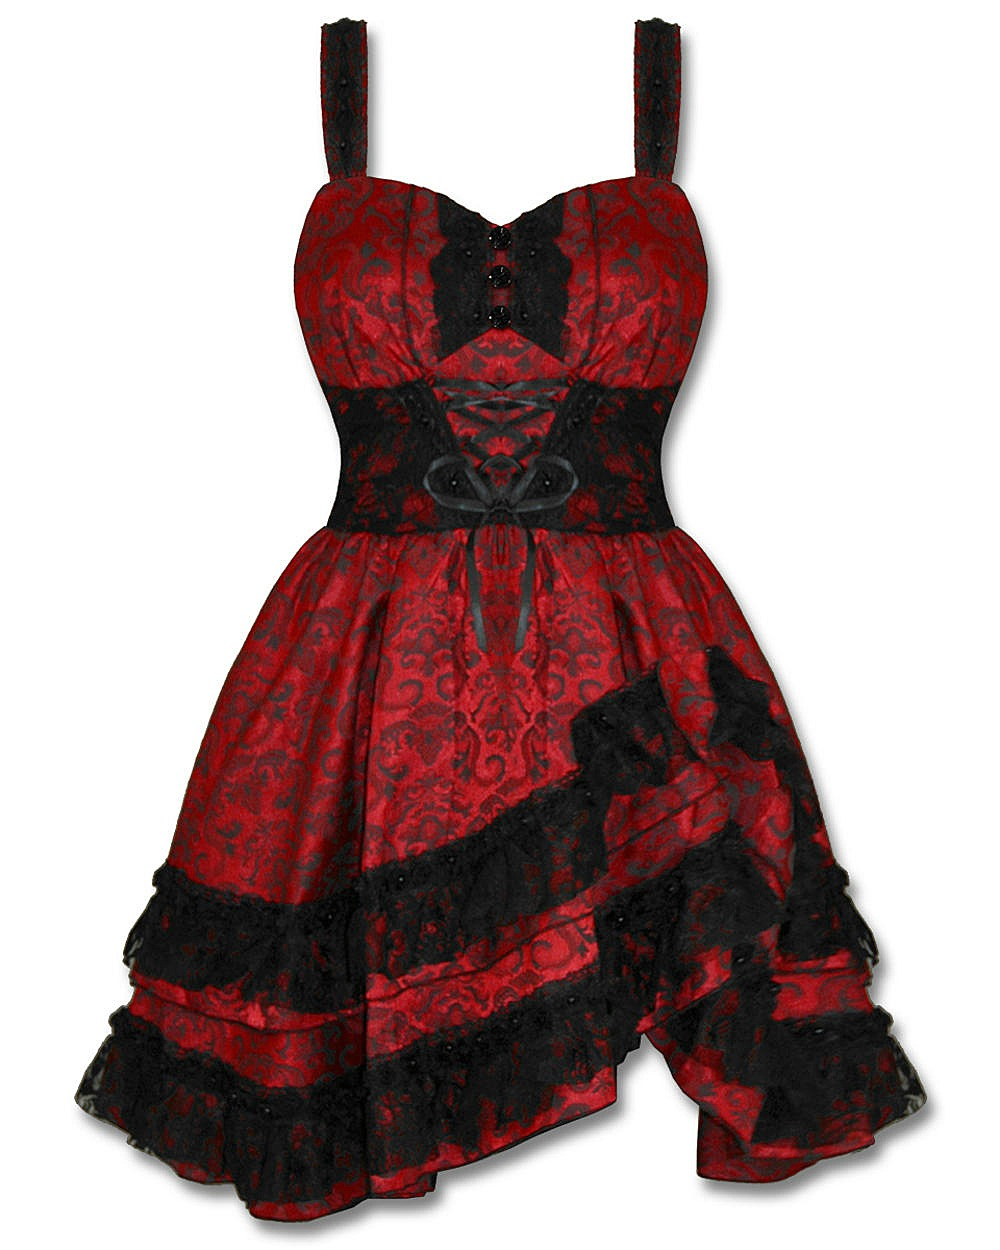 Gothic Dresses Coming Soon...